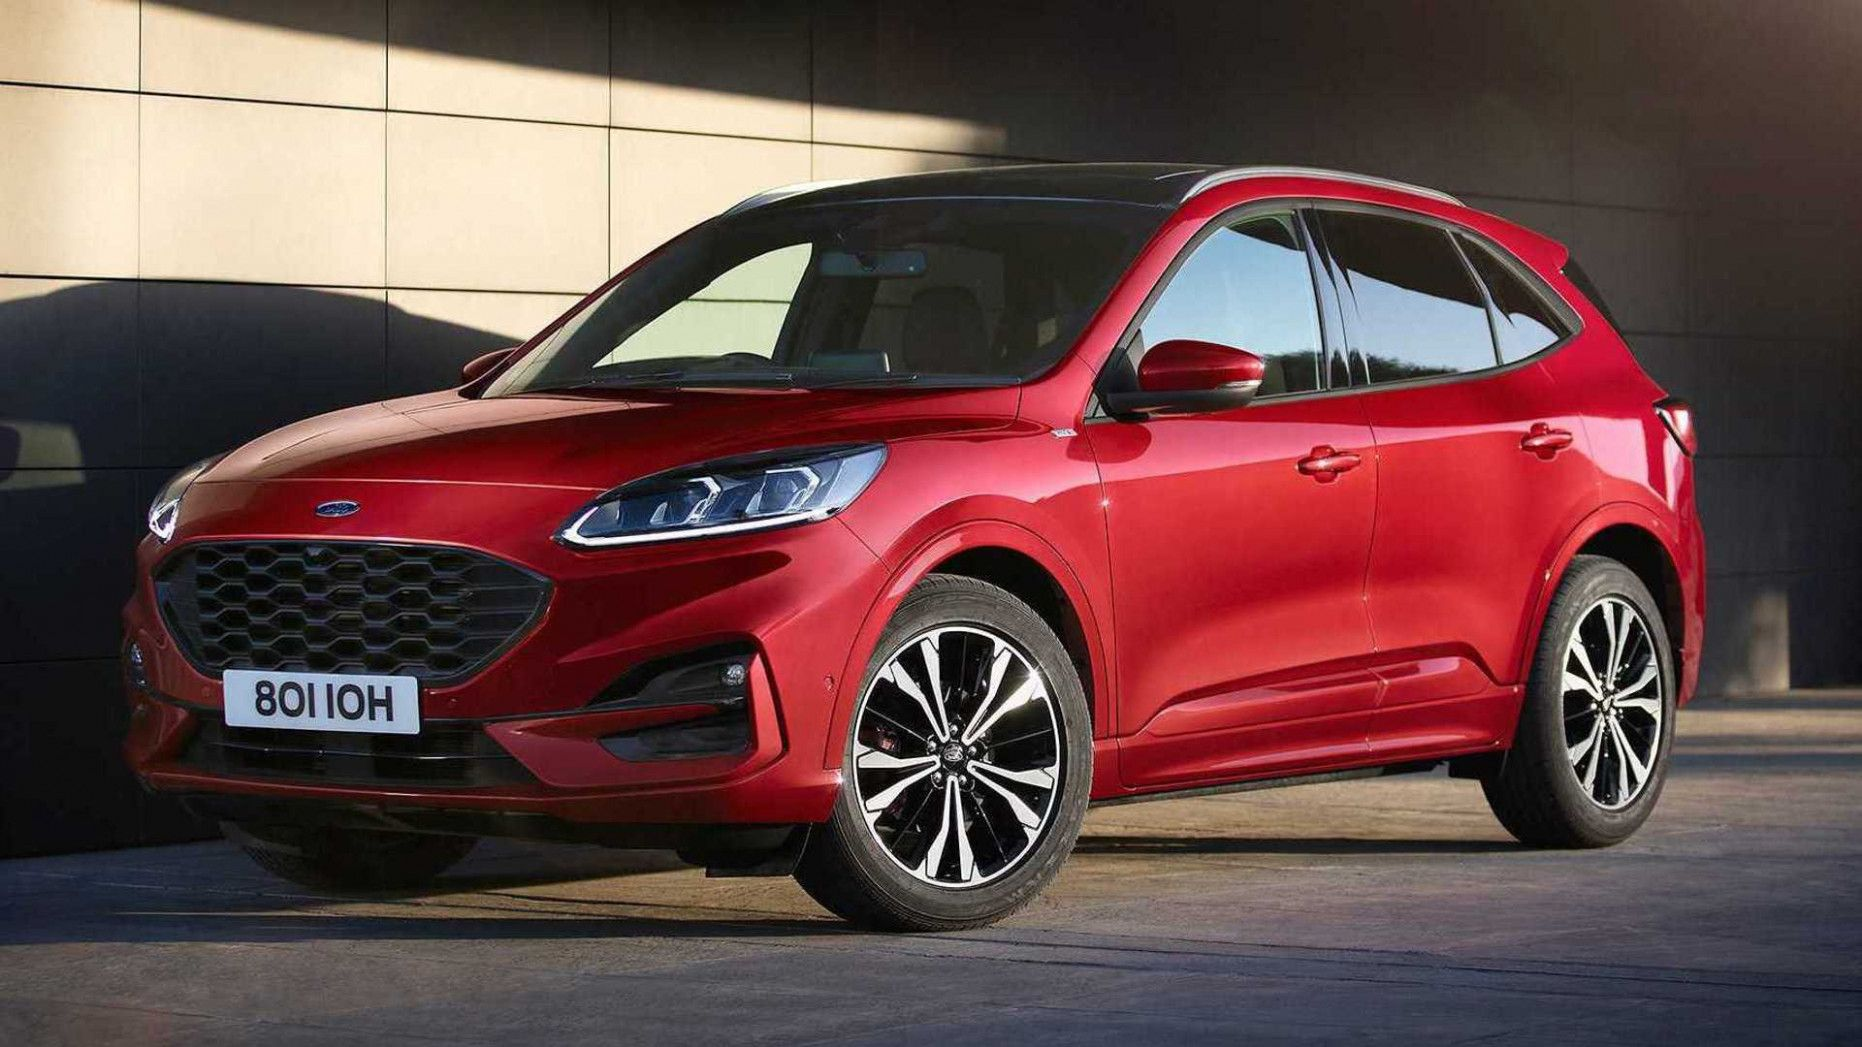 Heres What Industry Insiders Say About Ford Kuga 2020 Uk Ford Kuga Ford Ford Puma